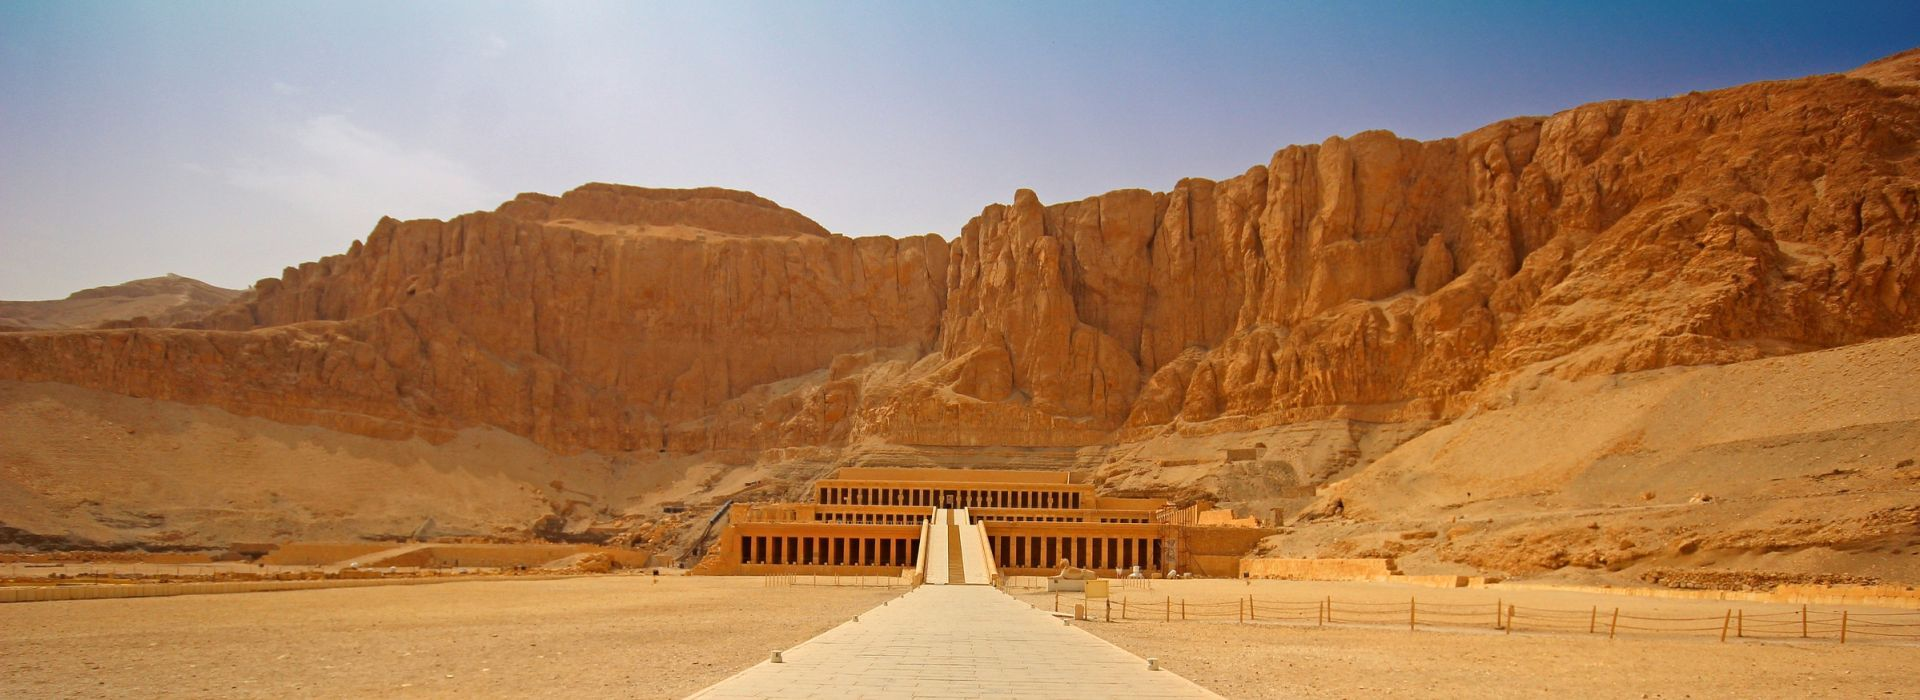 Cultural, religious and historic sites Tours in Egypt